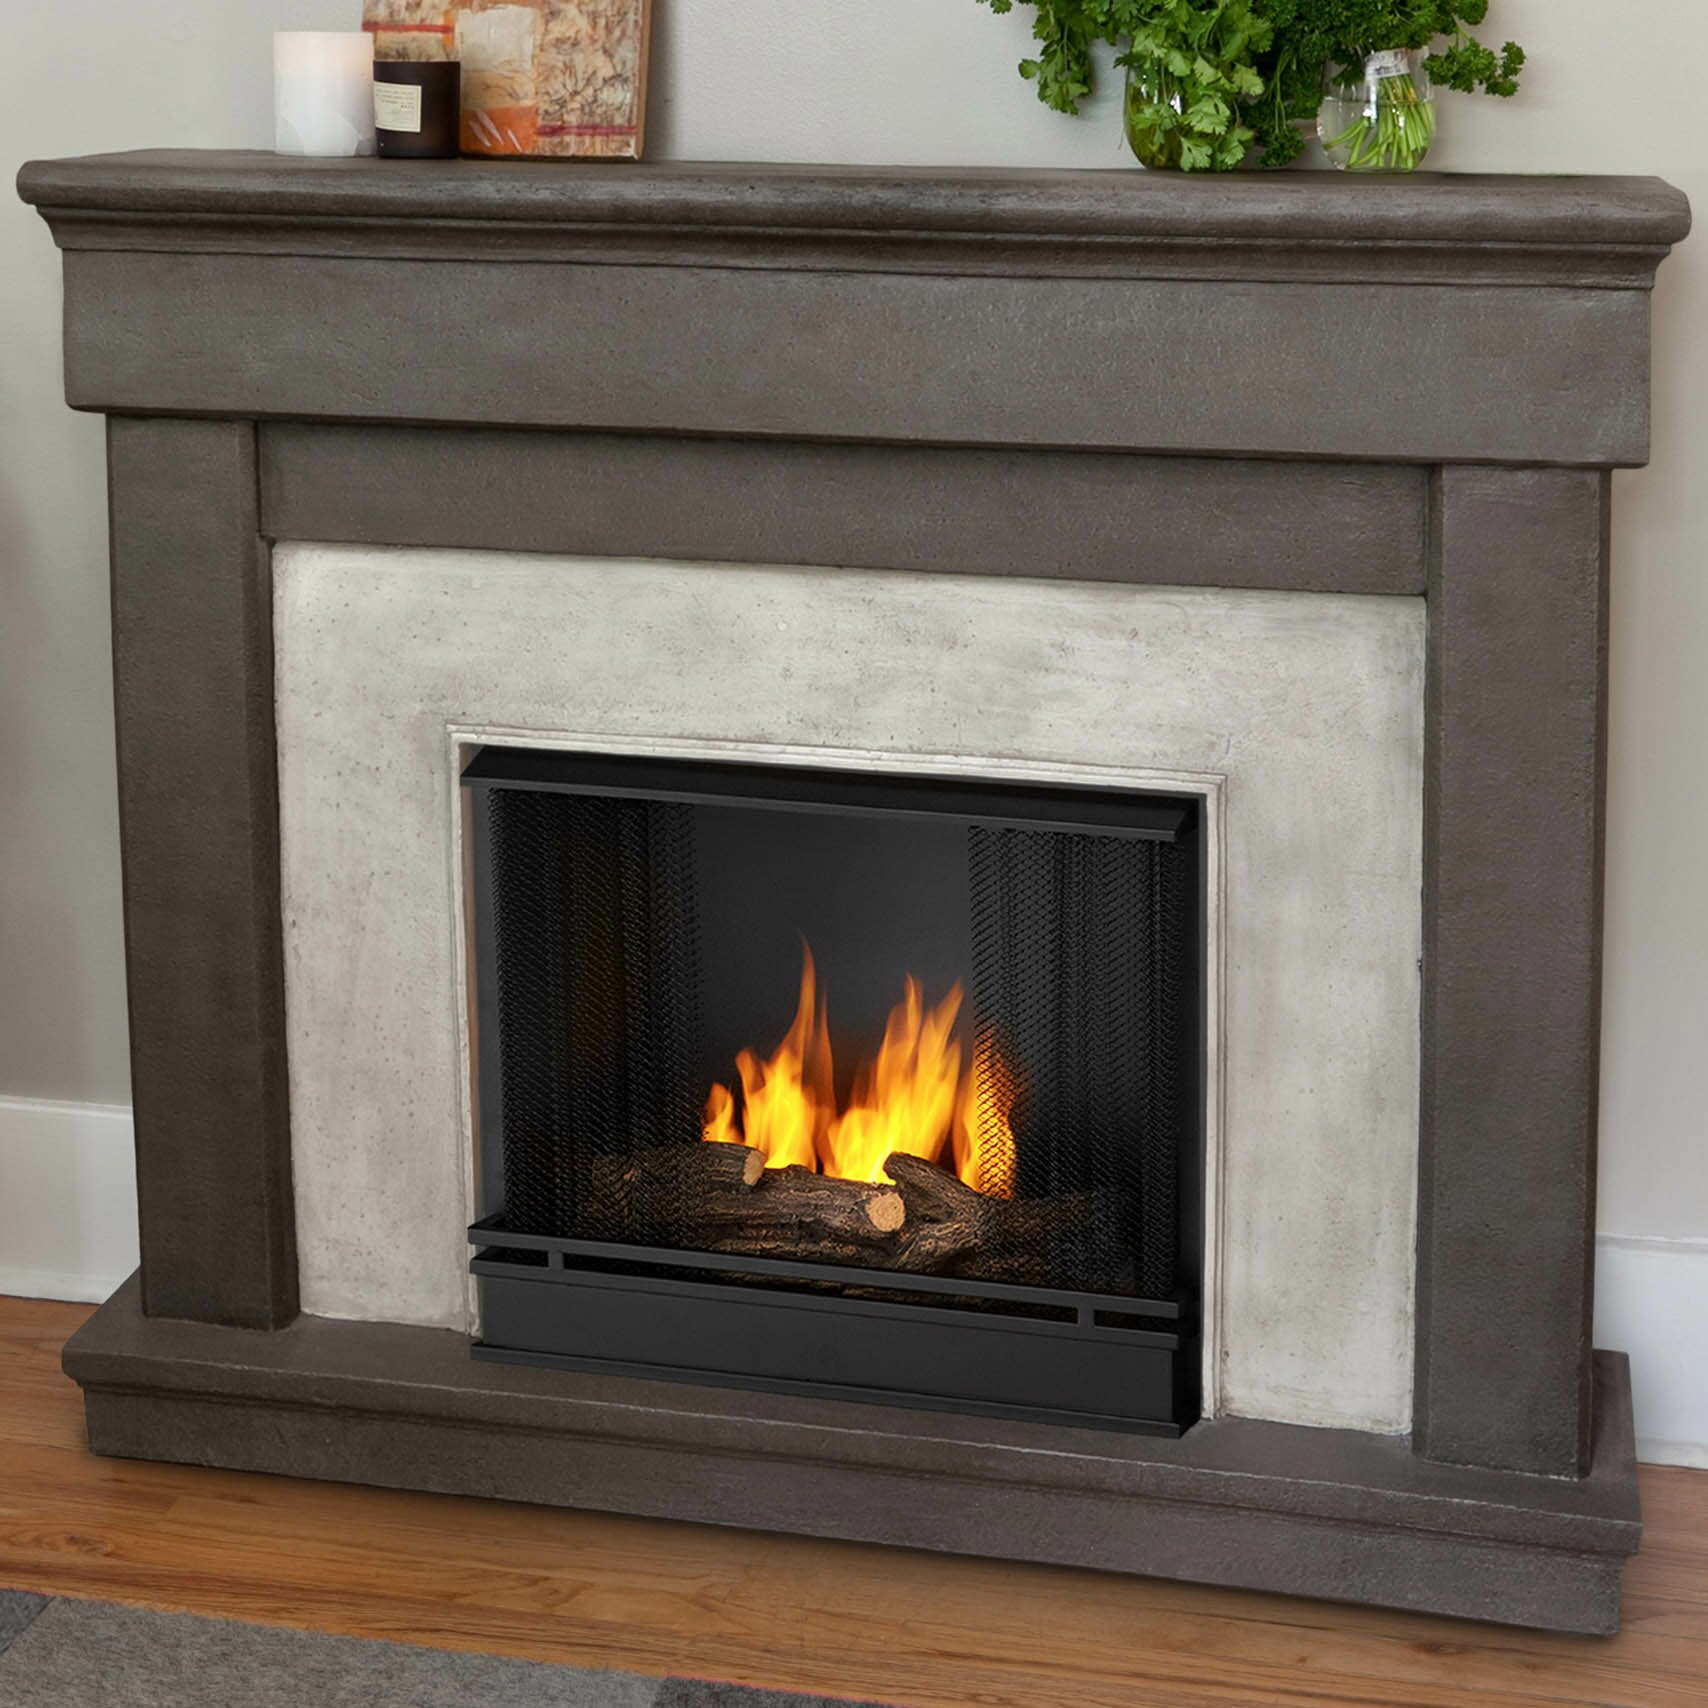 Real Flame Cast Mantel Cascade Wall Mount Gel Fuel Fireplace Wayfair